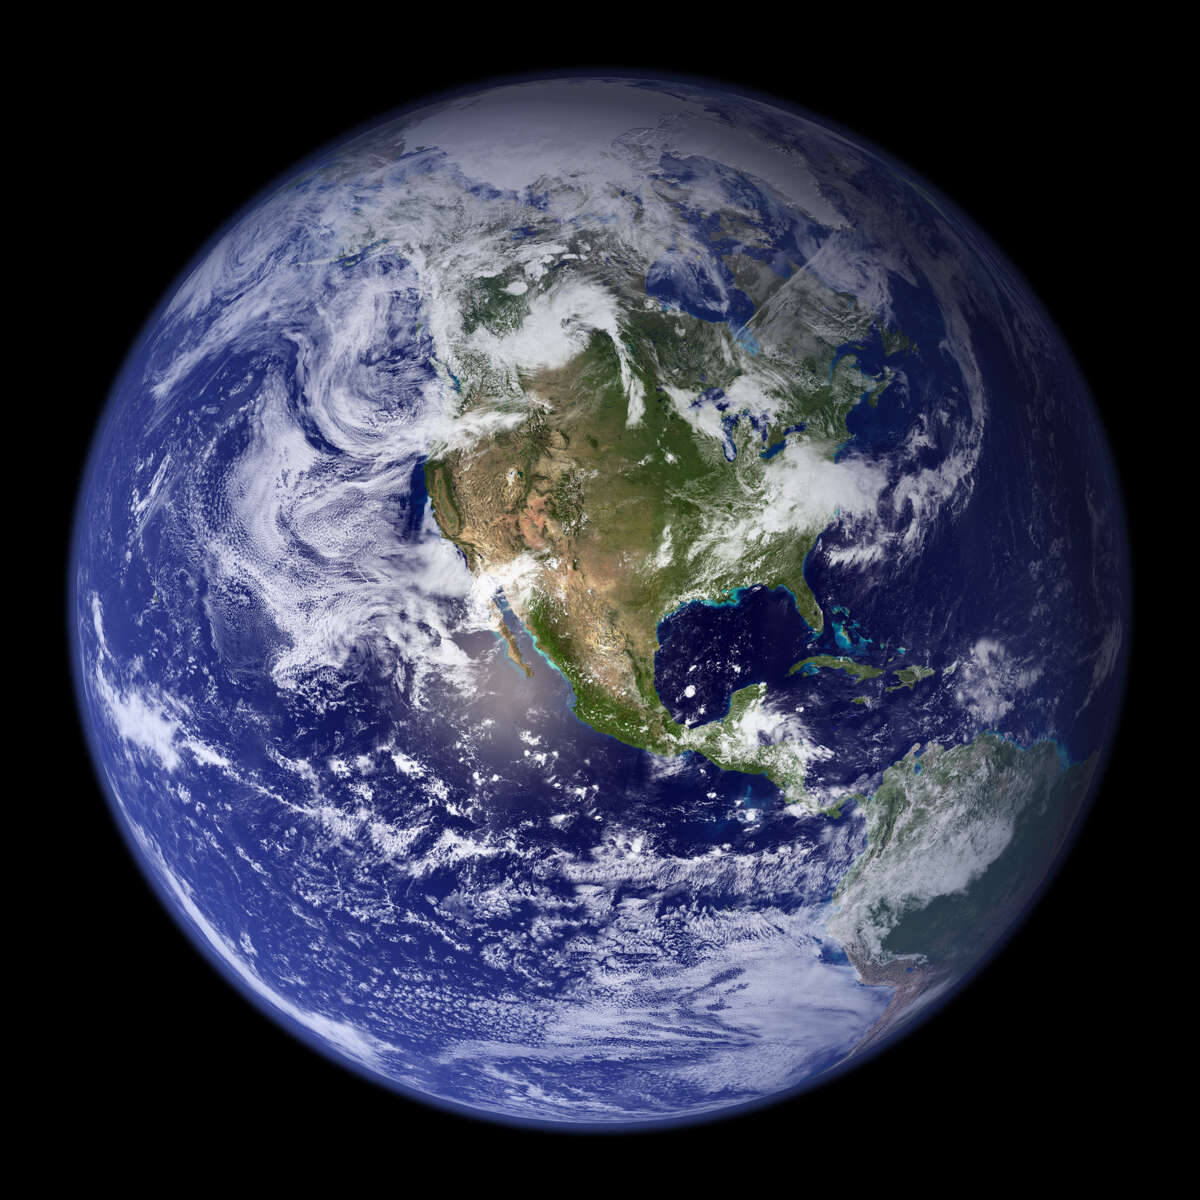 We've got just 1.75 billion to 3.25 billion years left before the Earth becomes uninhabitable, according to a new study by astrobiologists at the University of East Anglia, in England.